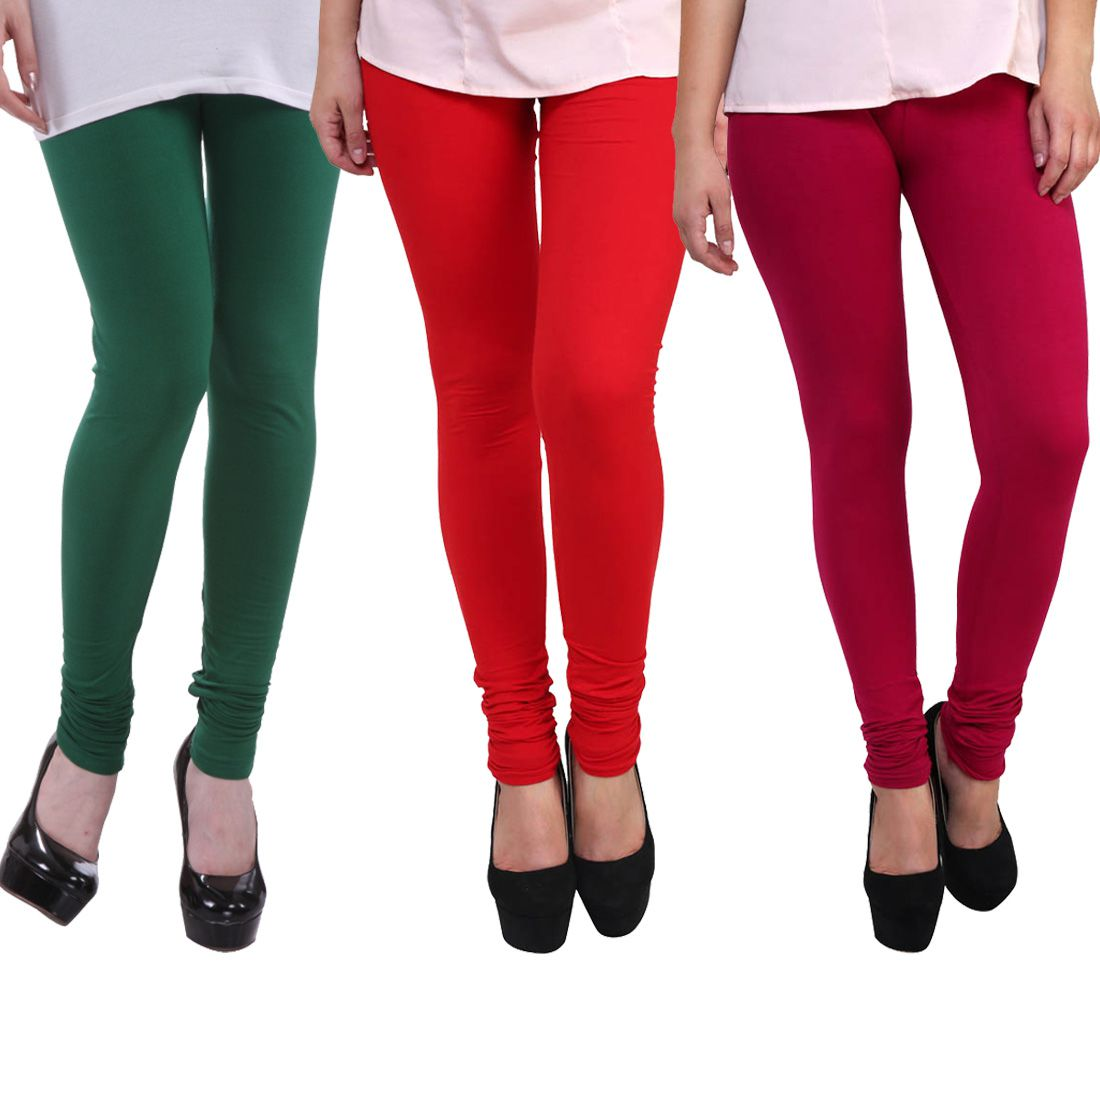 FnMe Cotton Lycra Pack of 3 Leggings